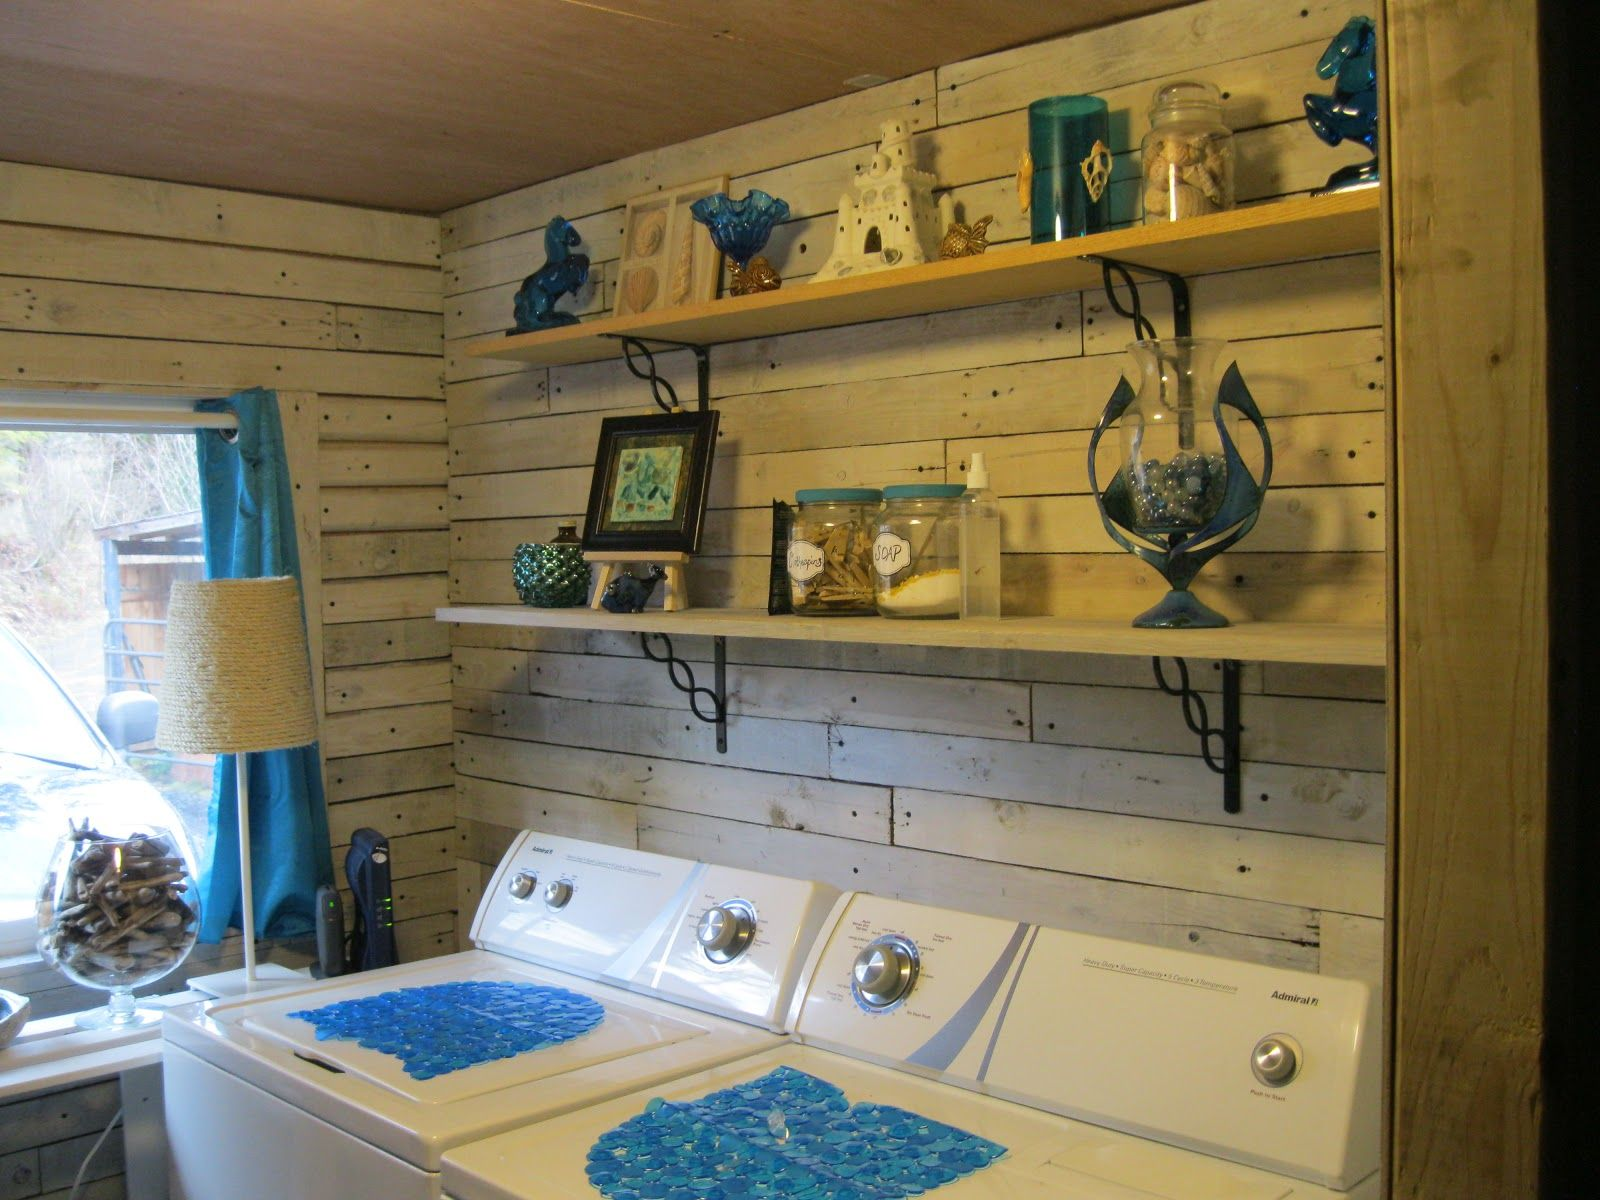 Laundry Room Makeover Ideas for your Mobile Home | Laundry rooms ...